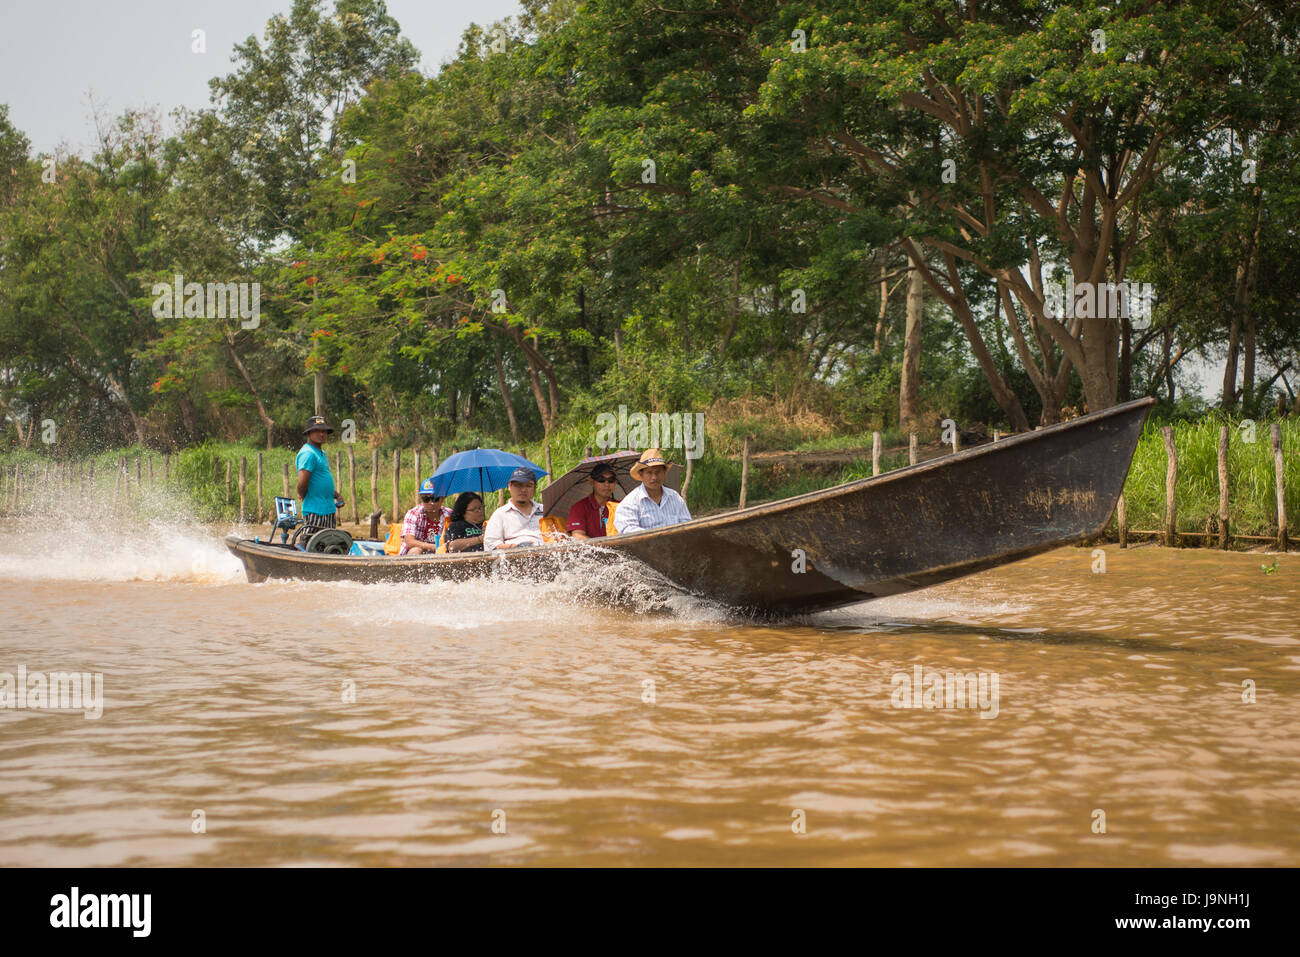 A motor boat carrying passengers on Inle Lake, Myanmar. Stock Photo